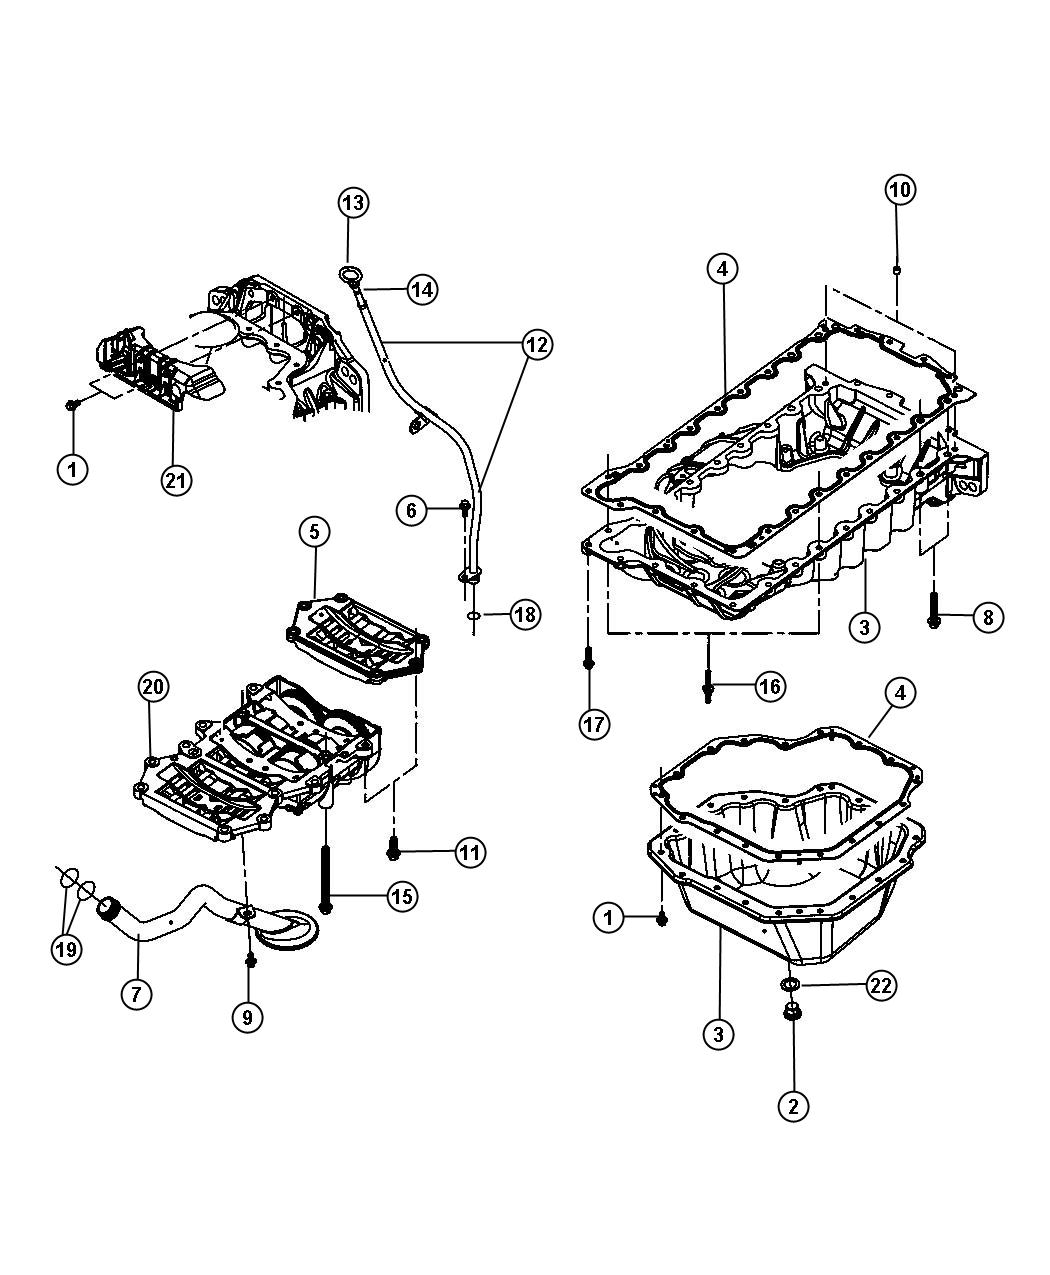 Diagram Engine Oil Pan, Engine Oil Level Indicator And Related Parts 2.8L [2.8L I4 Turbo Diesel Engine]. for your Plymouth